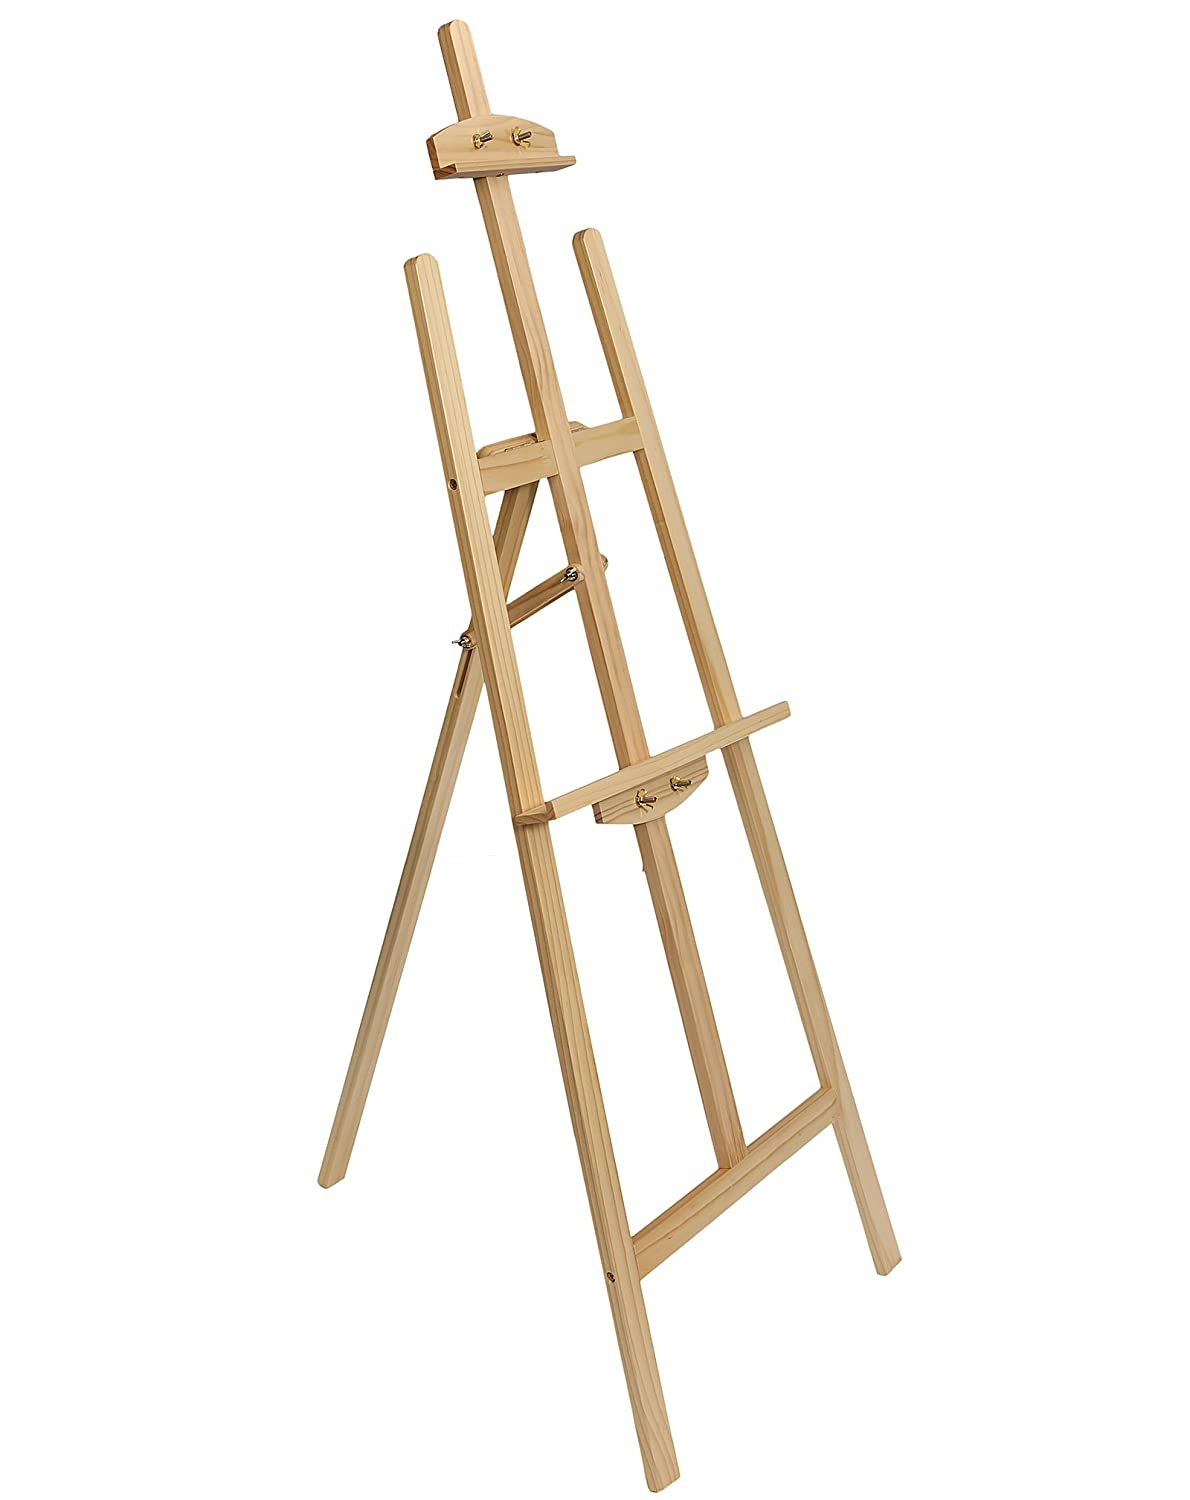 Artist Easel - Pine Wood Floor Studio Easel and Professional Wooden Easel for Painting, Sketching, Display, Exhibition, and Art Artists Improves Technique and Versatility, Students and Hobbyists Artistik